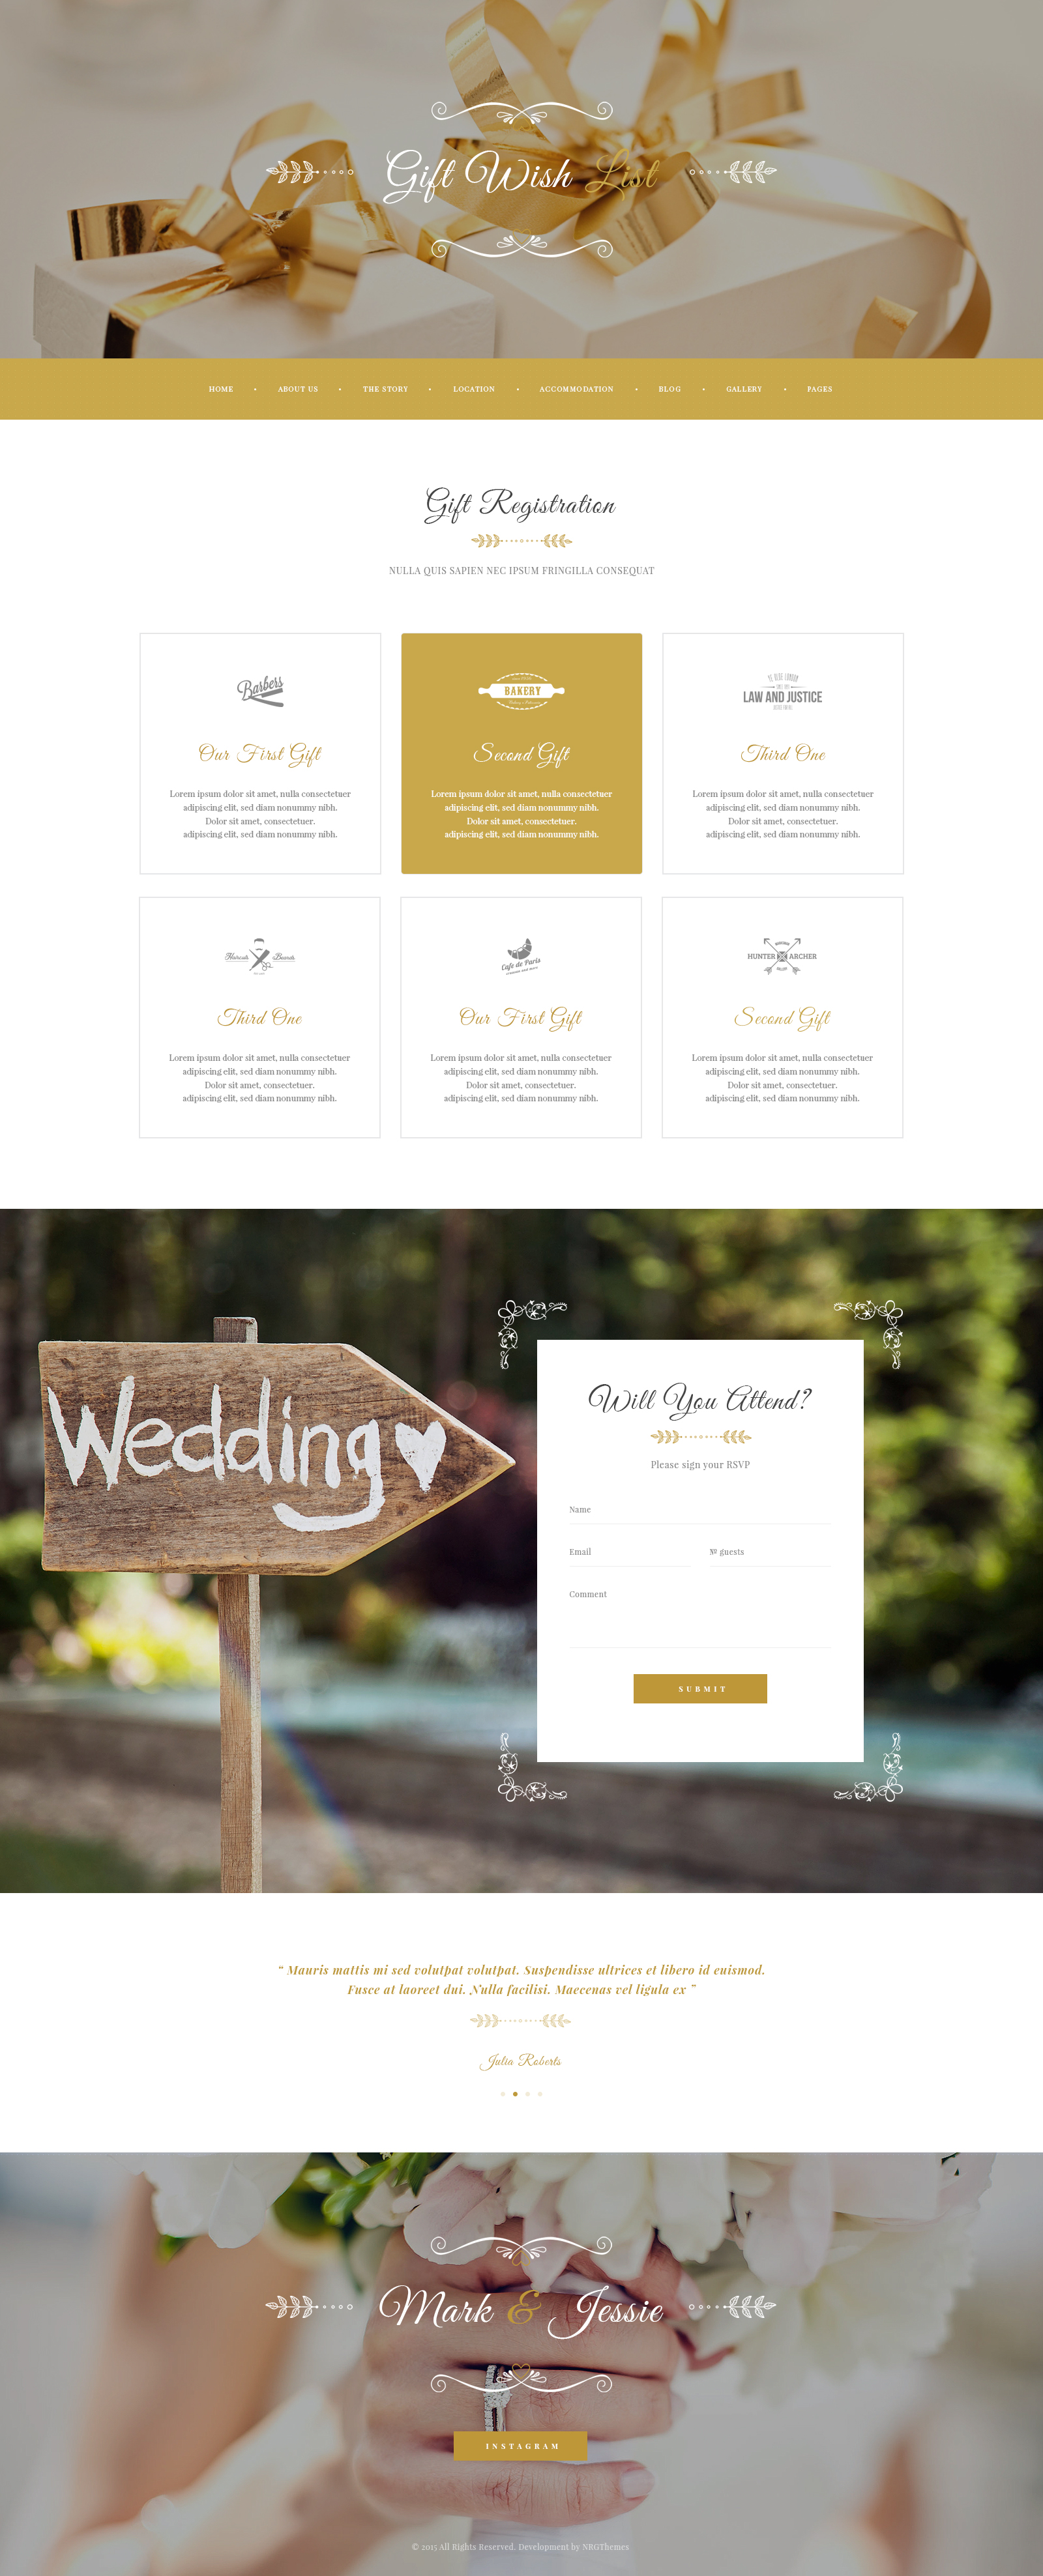 Wedding Wish List Template : PSD Template for Wedding Events, Organizer, Photo Sessions by ...